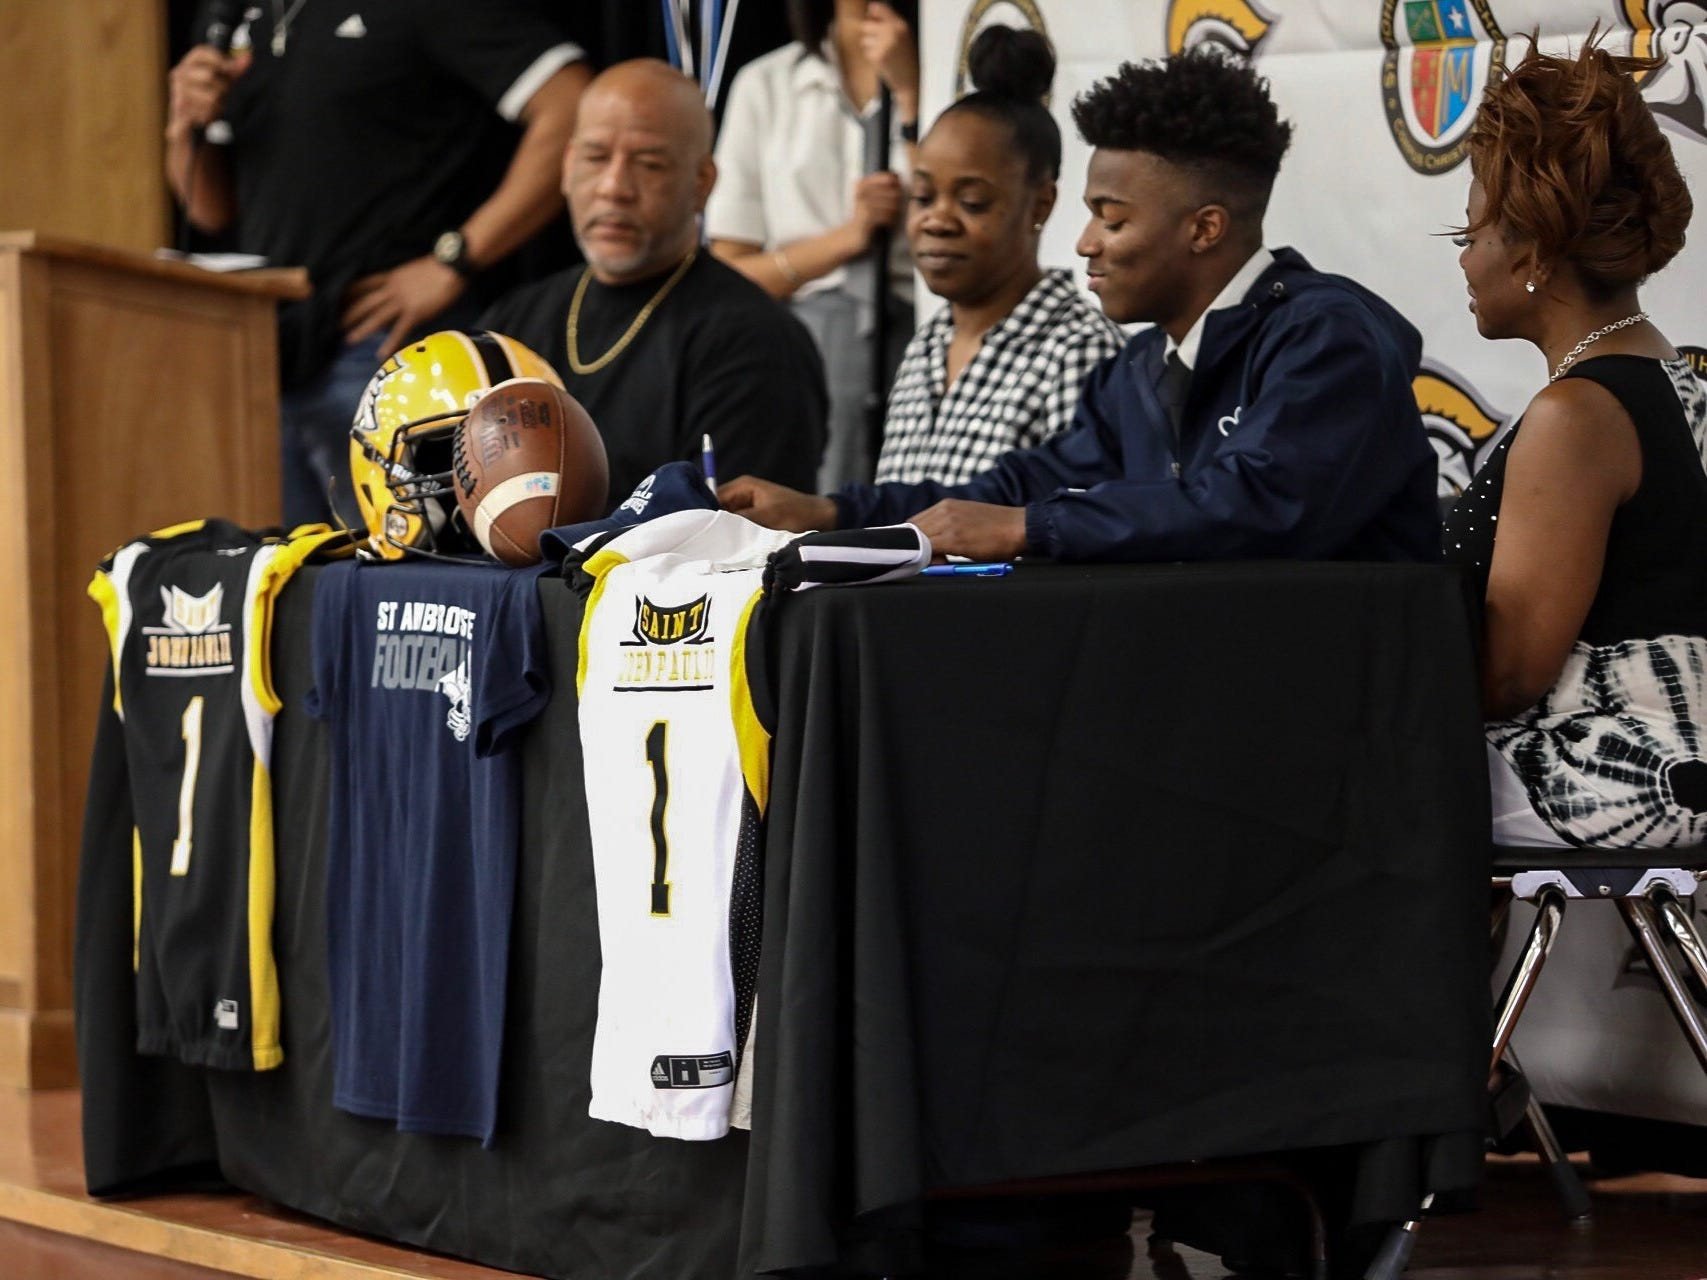 John Paul II football player Keion Lewis signed with St. Ambrose University in Davenport, Iowa and will receive a full academic and athletic scholarship.